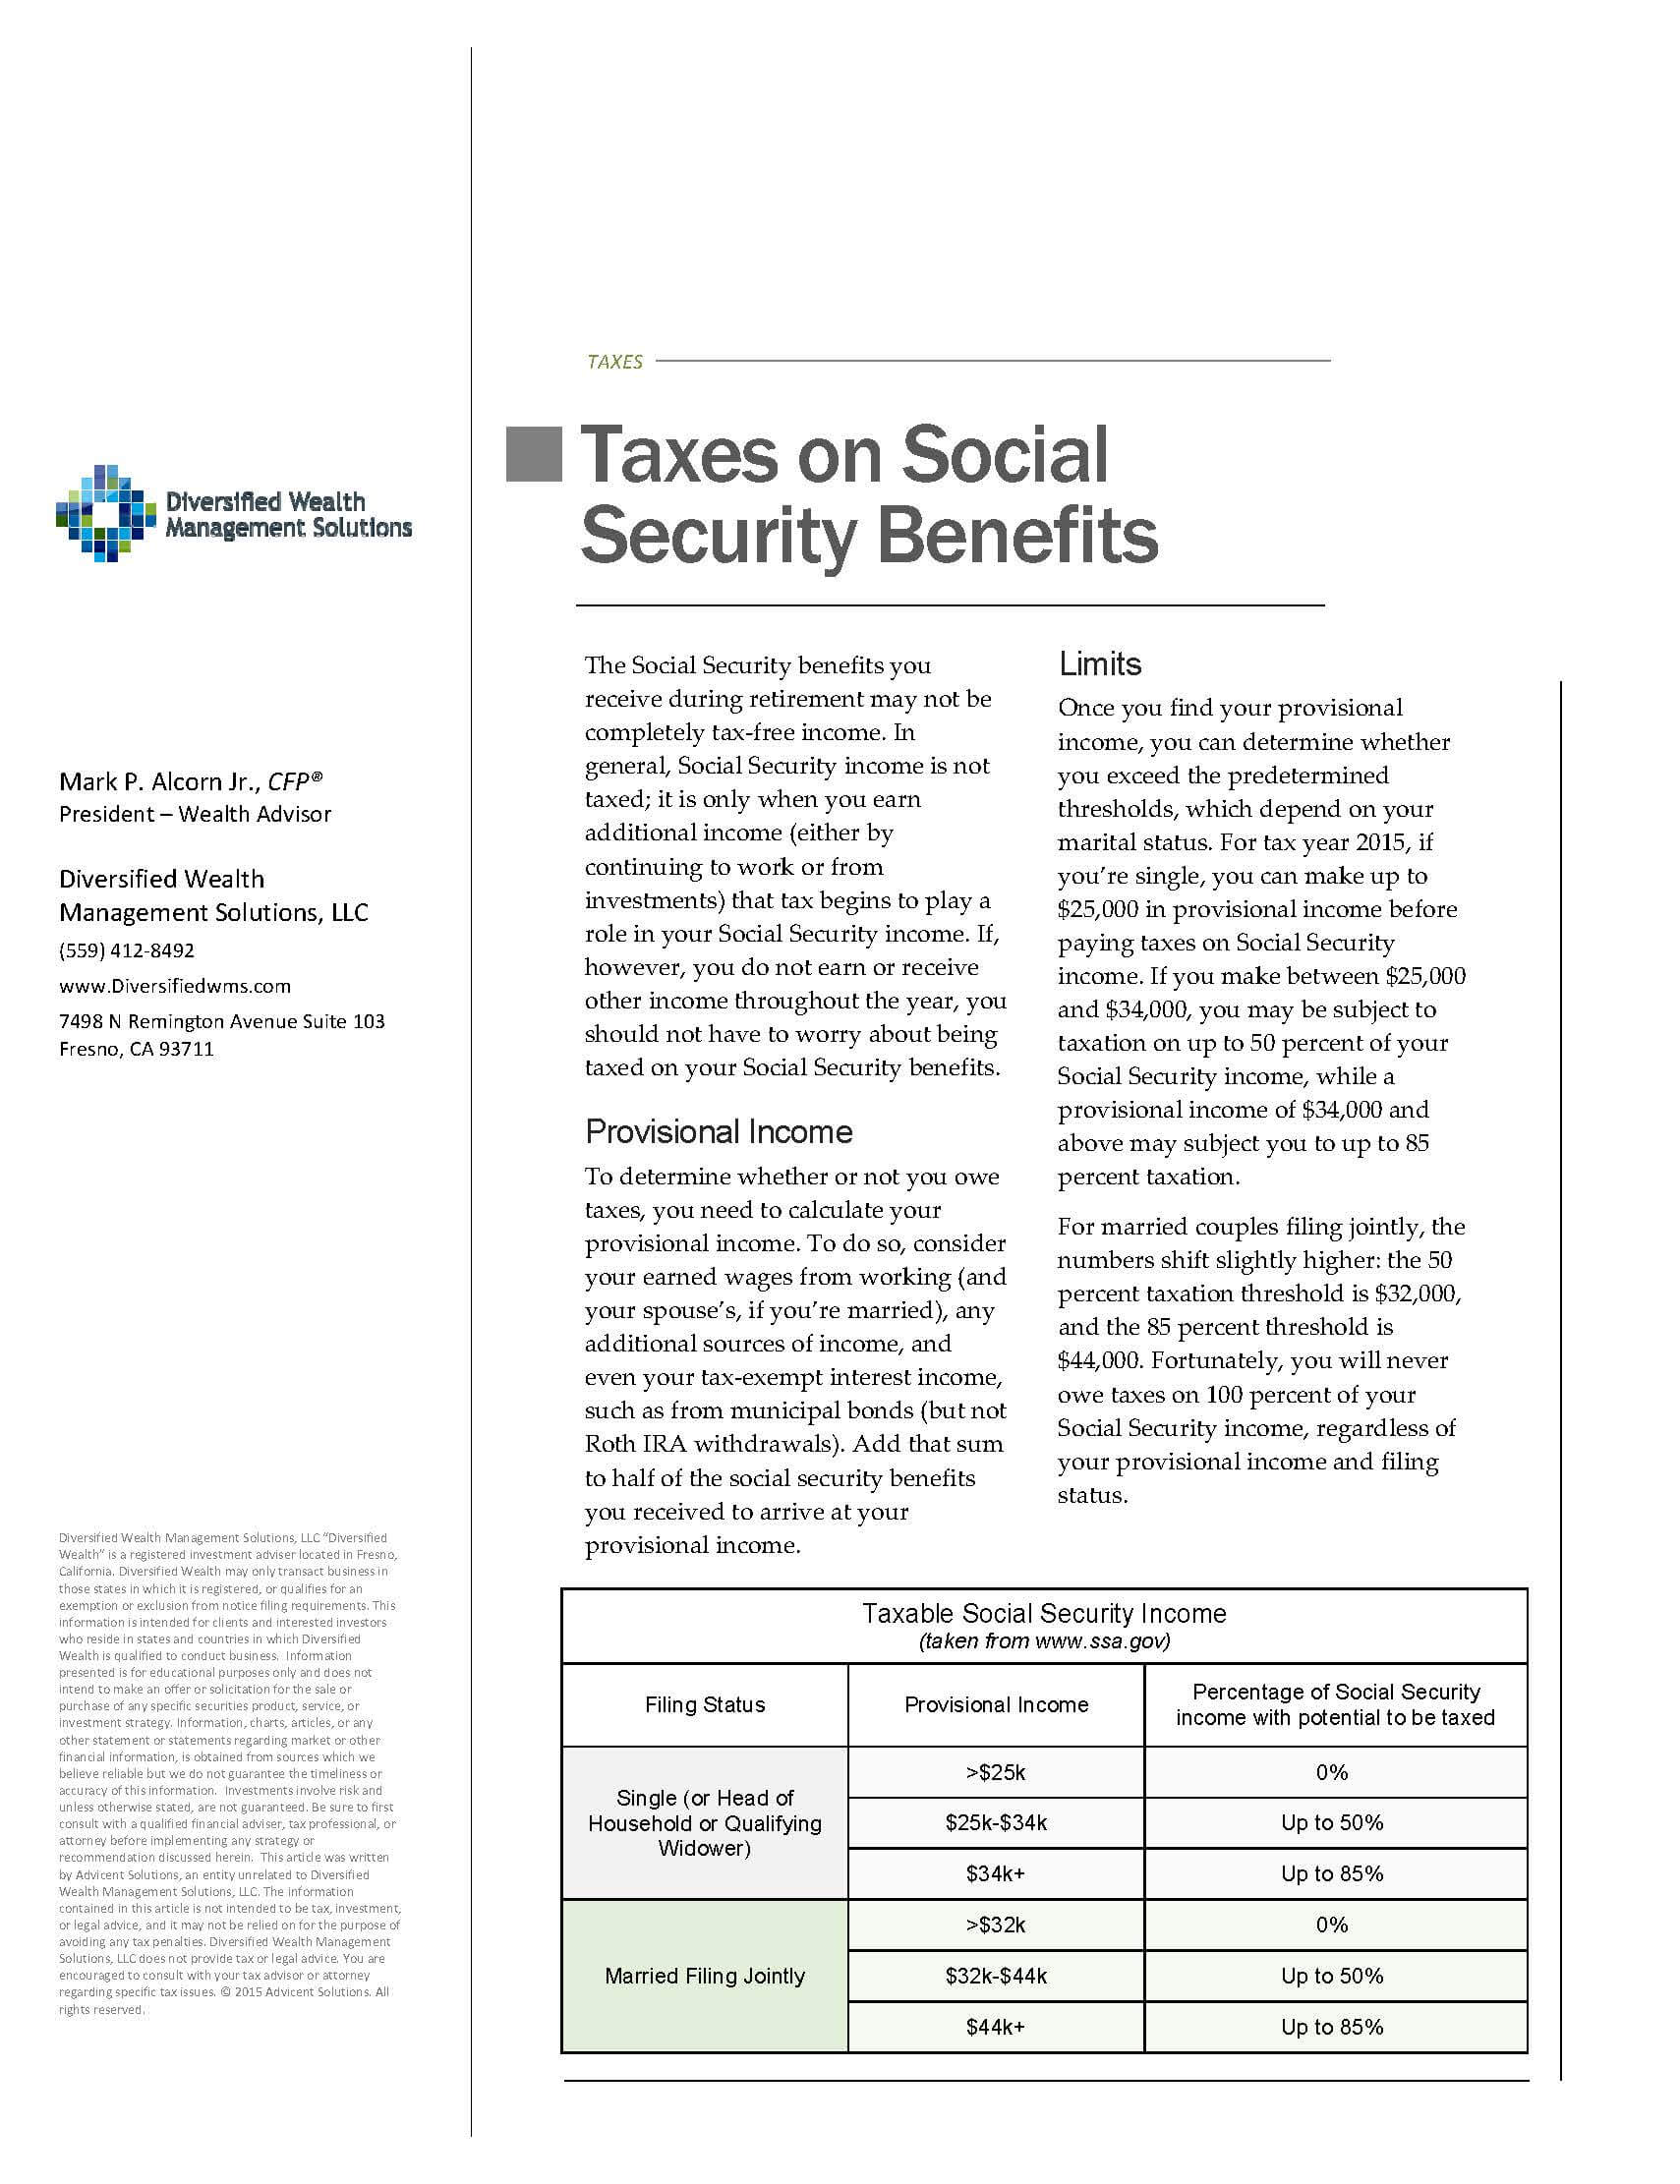 Taxes On Social Security Benefits